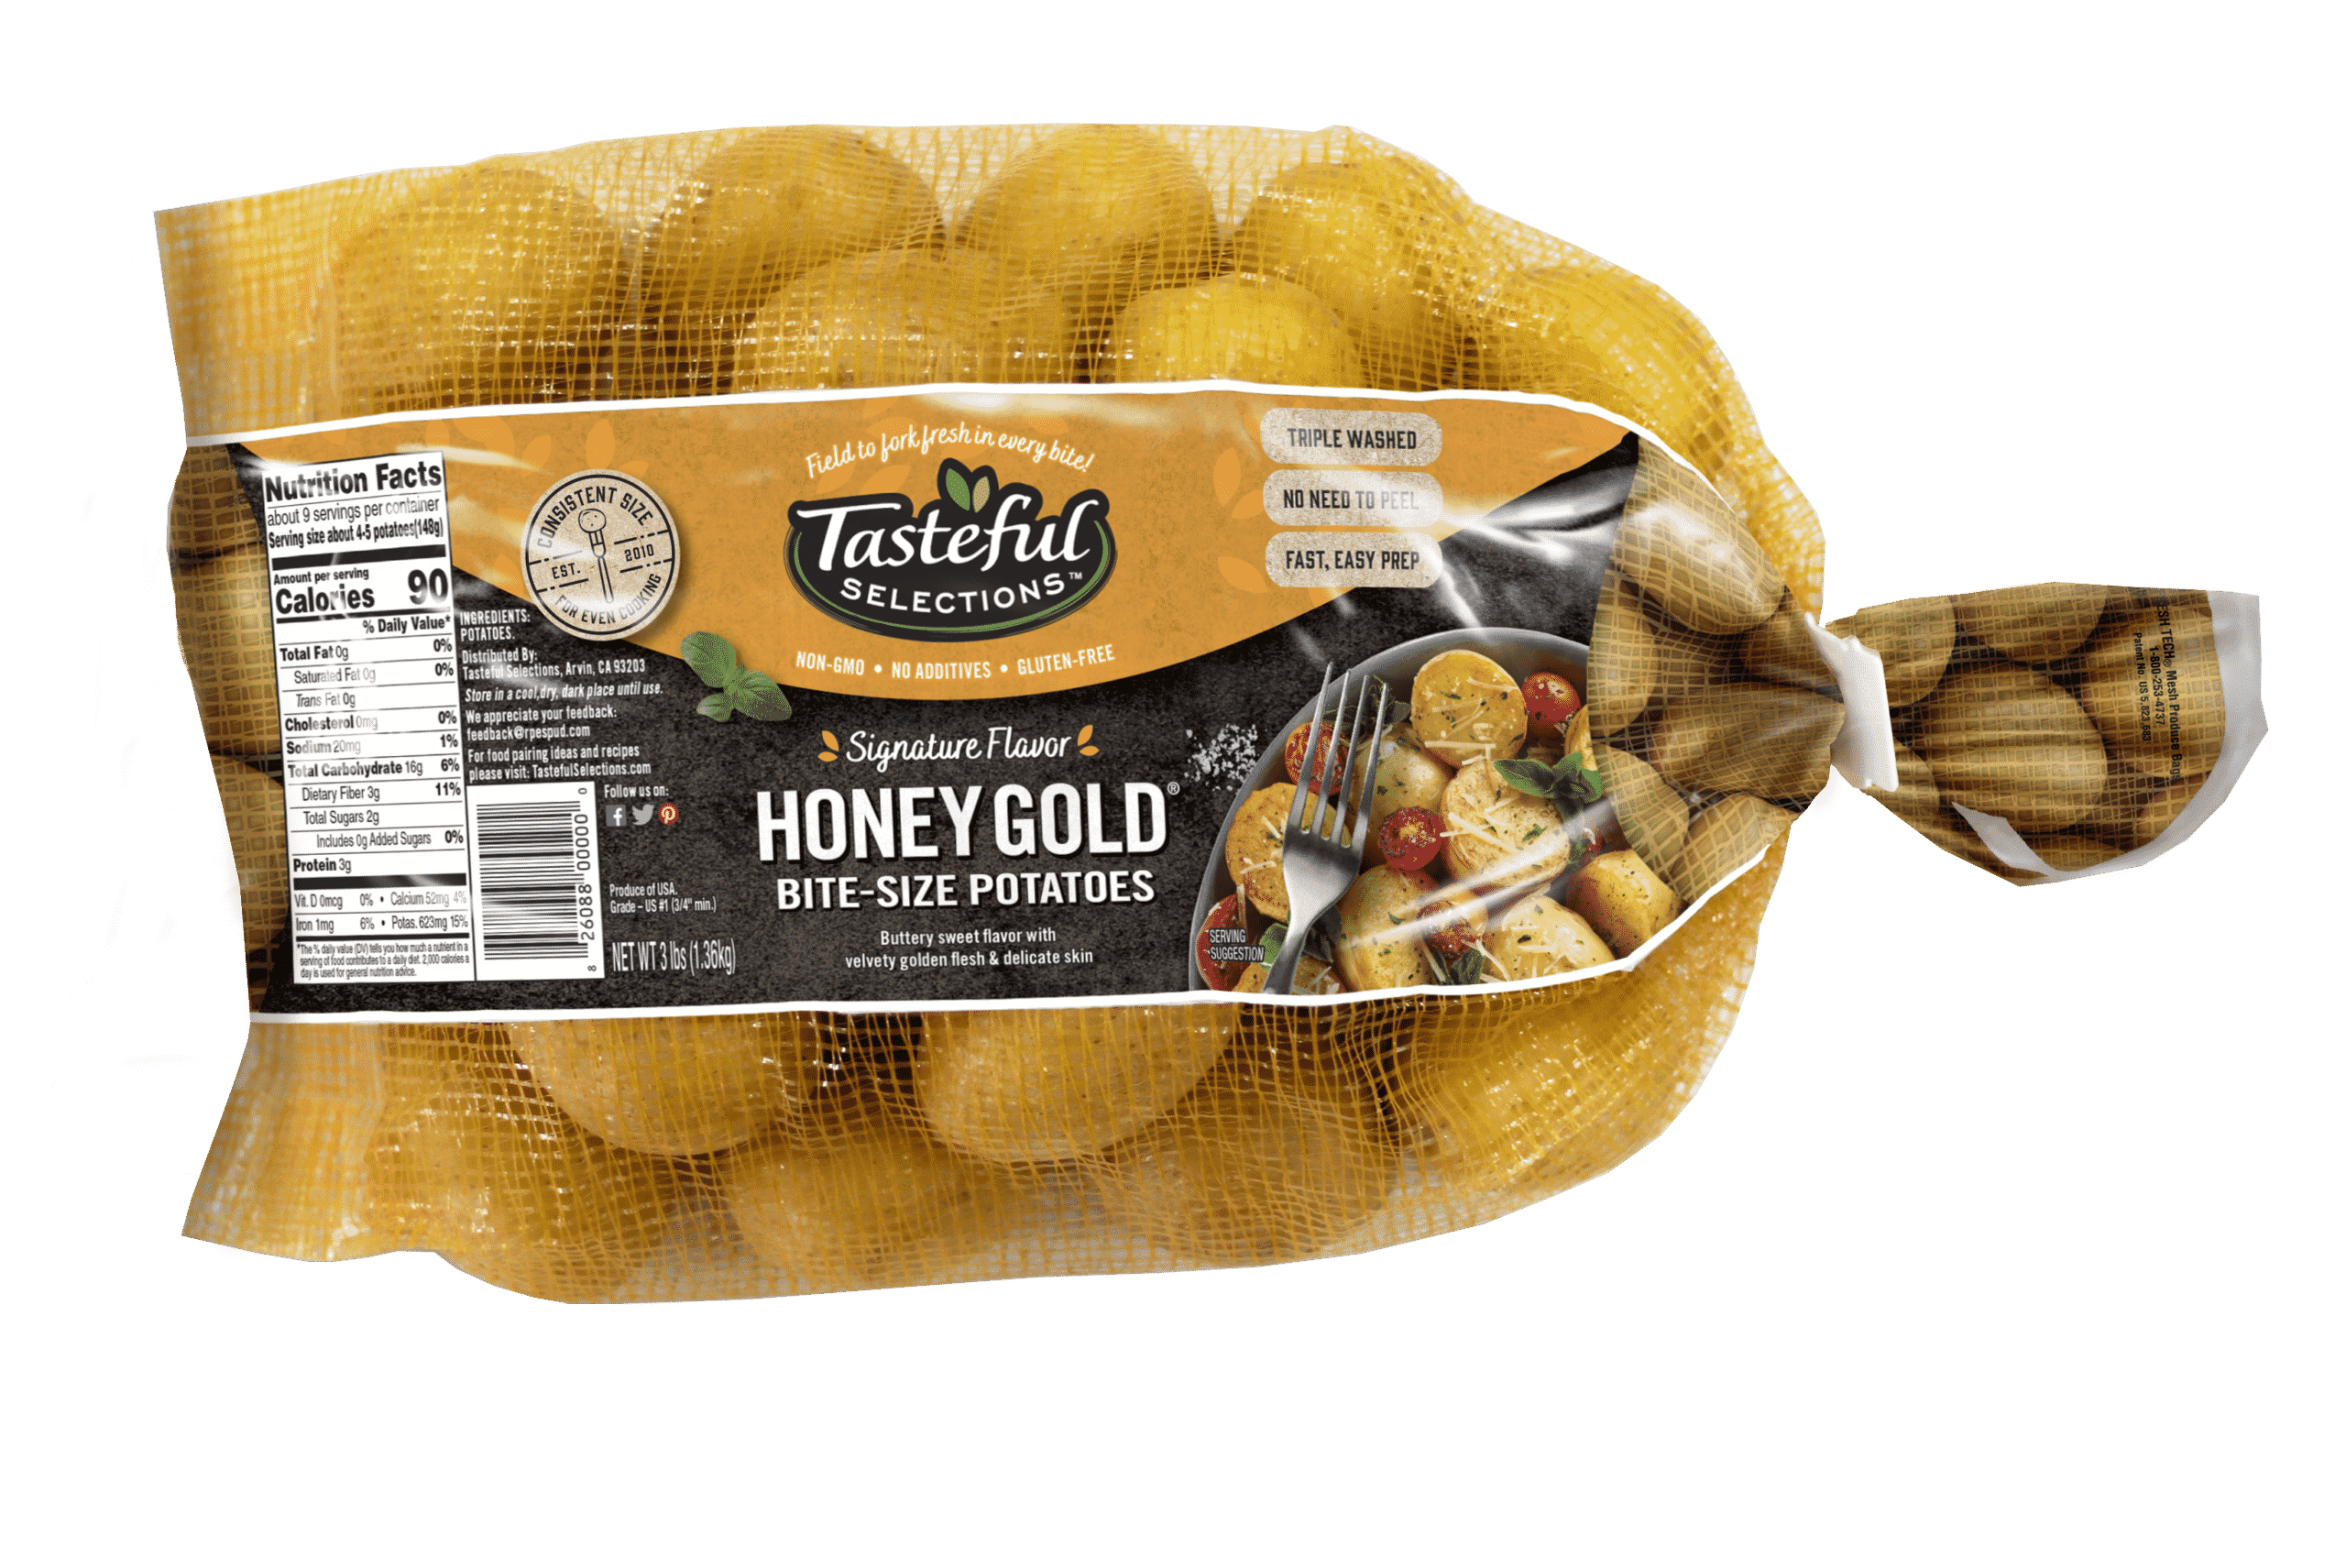 Tasteful Selections Honey Gold Bite-Size Potatoes Vertical Mesh